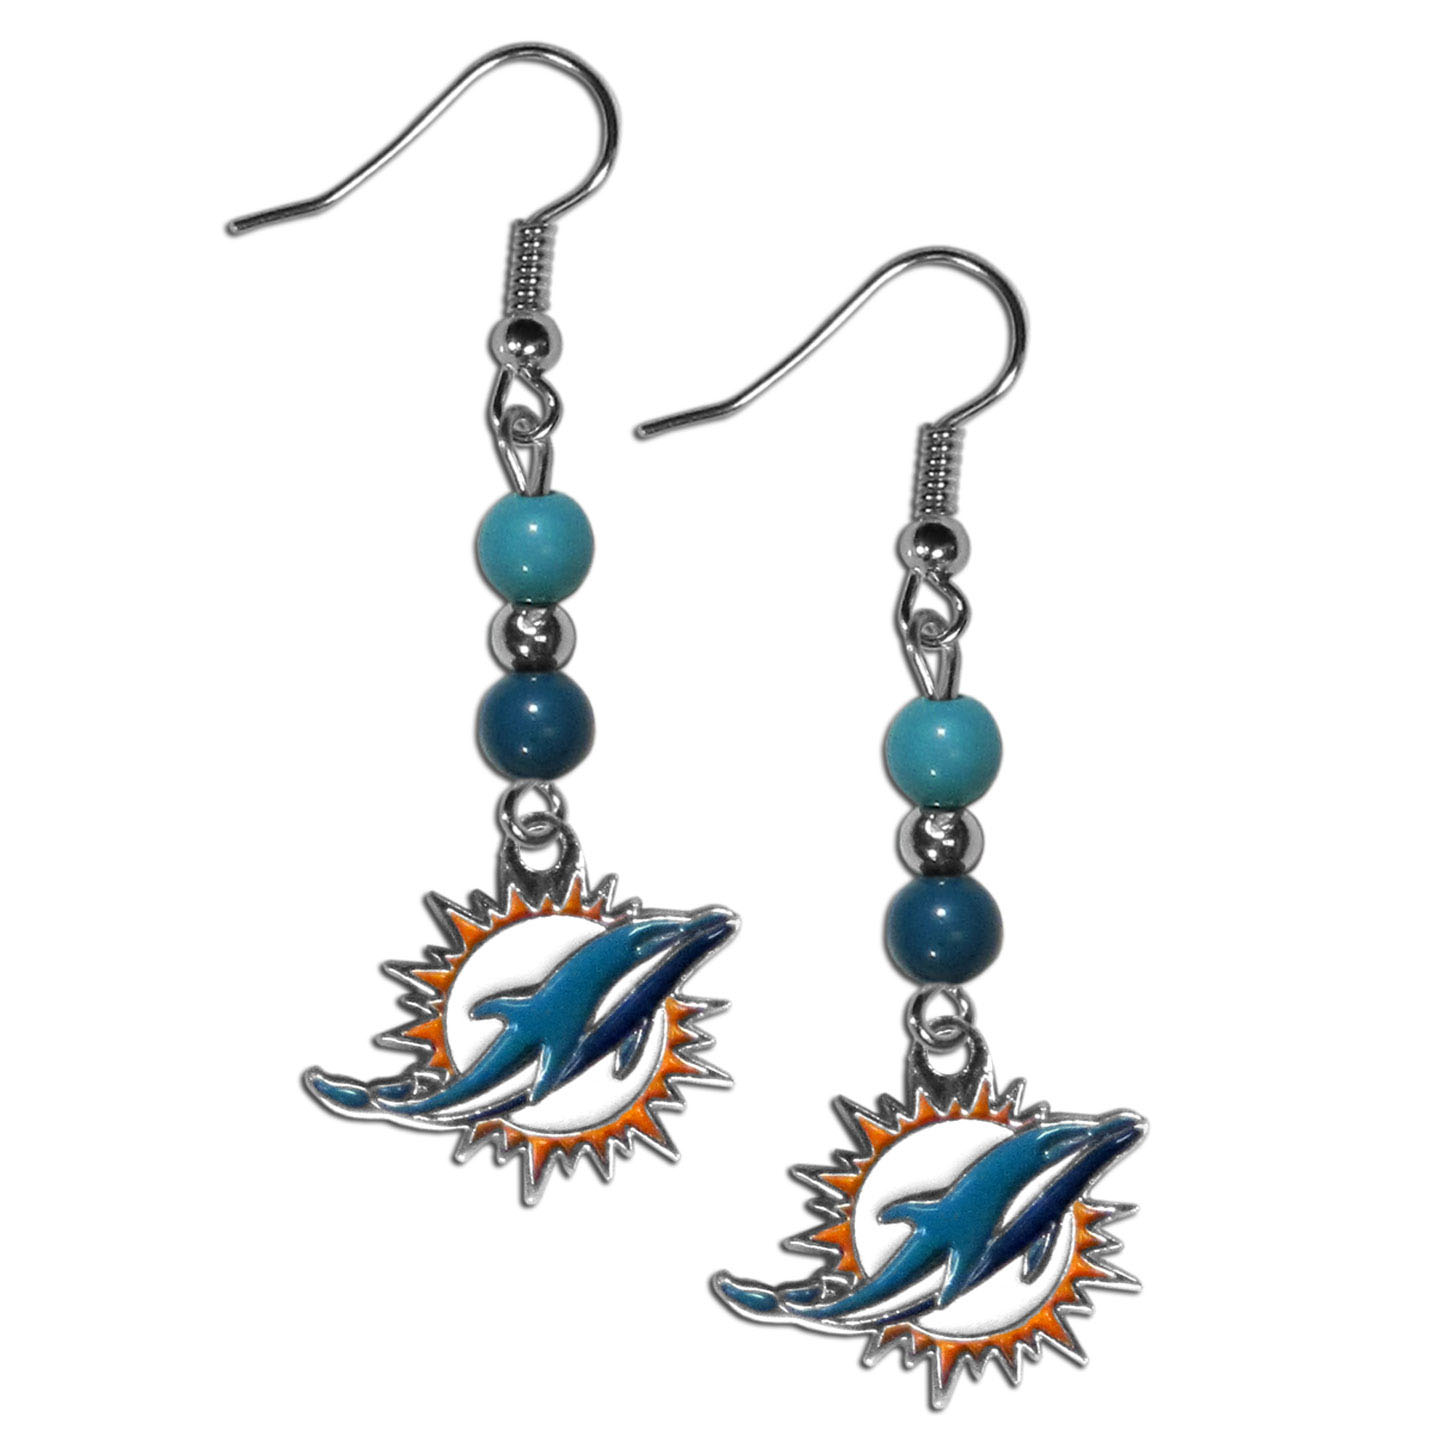 Miami Dolphins Fan Bead Dangle Earrings - Love your team, show it off with our Miami Dolphins bead dangle earrings! These super cute earrings hang approximately 2 inches and features 2 team colored beads and a high polish team charm. A must have for game day!